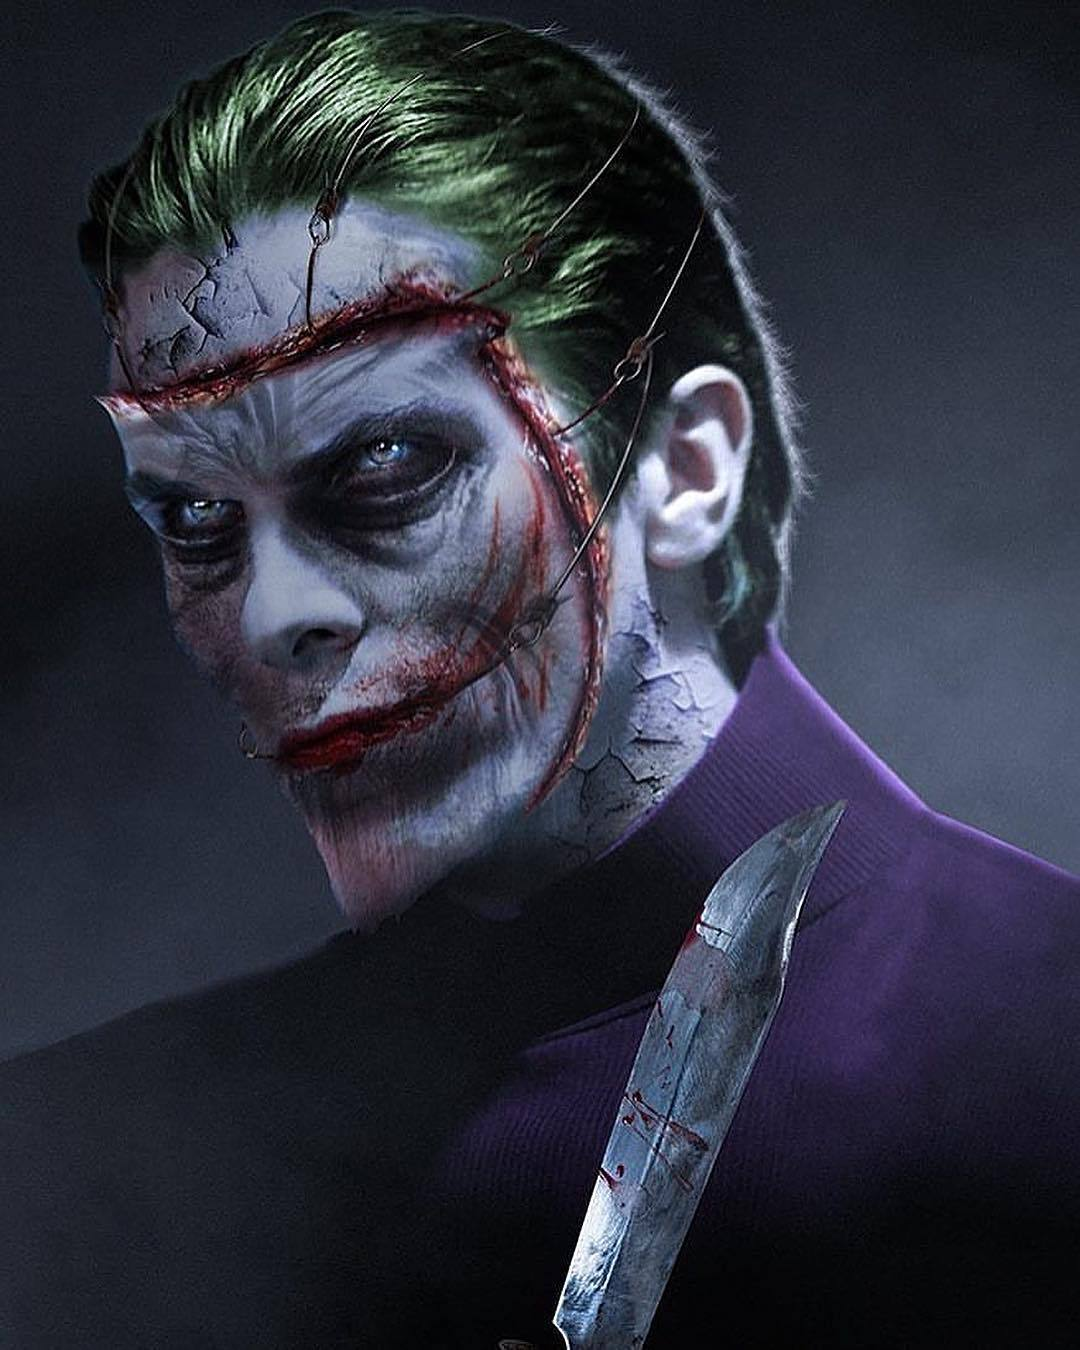 Joker 2019 Wallpapers High Quality | Download Free